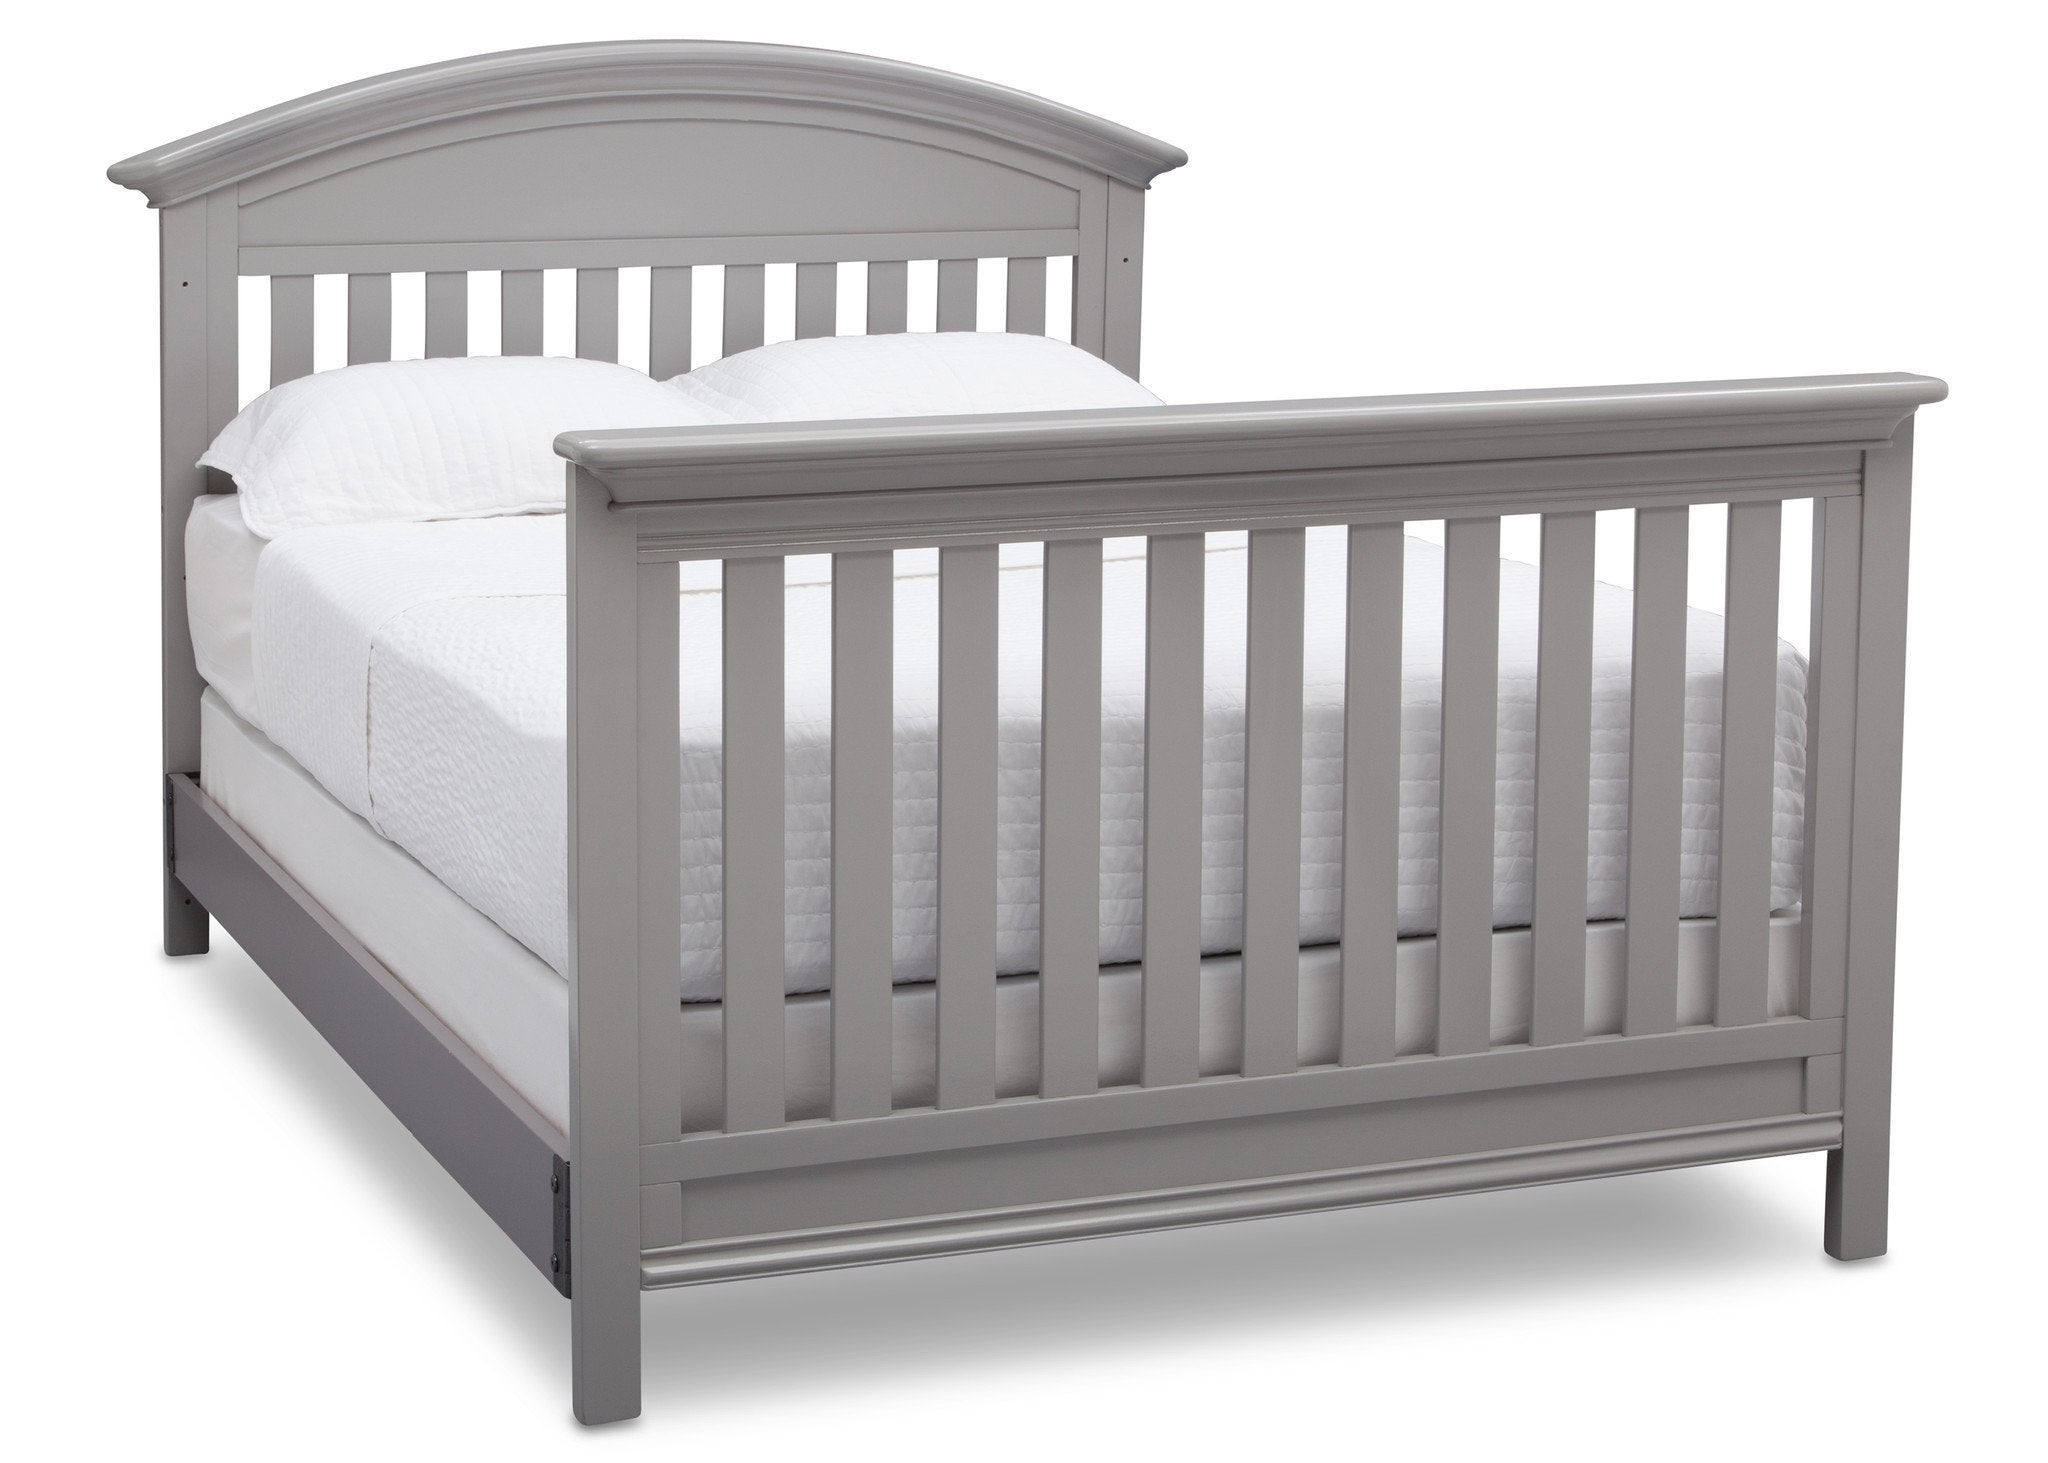 details everett kids products convertible crib nursery antique cribs gray dorel eng collections knightly baby living in sourceimage